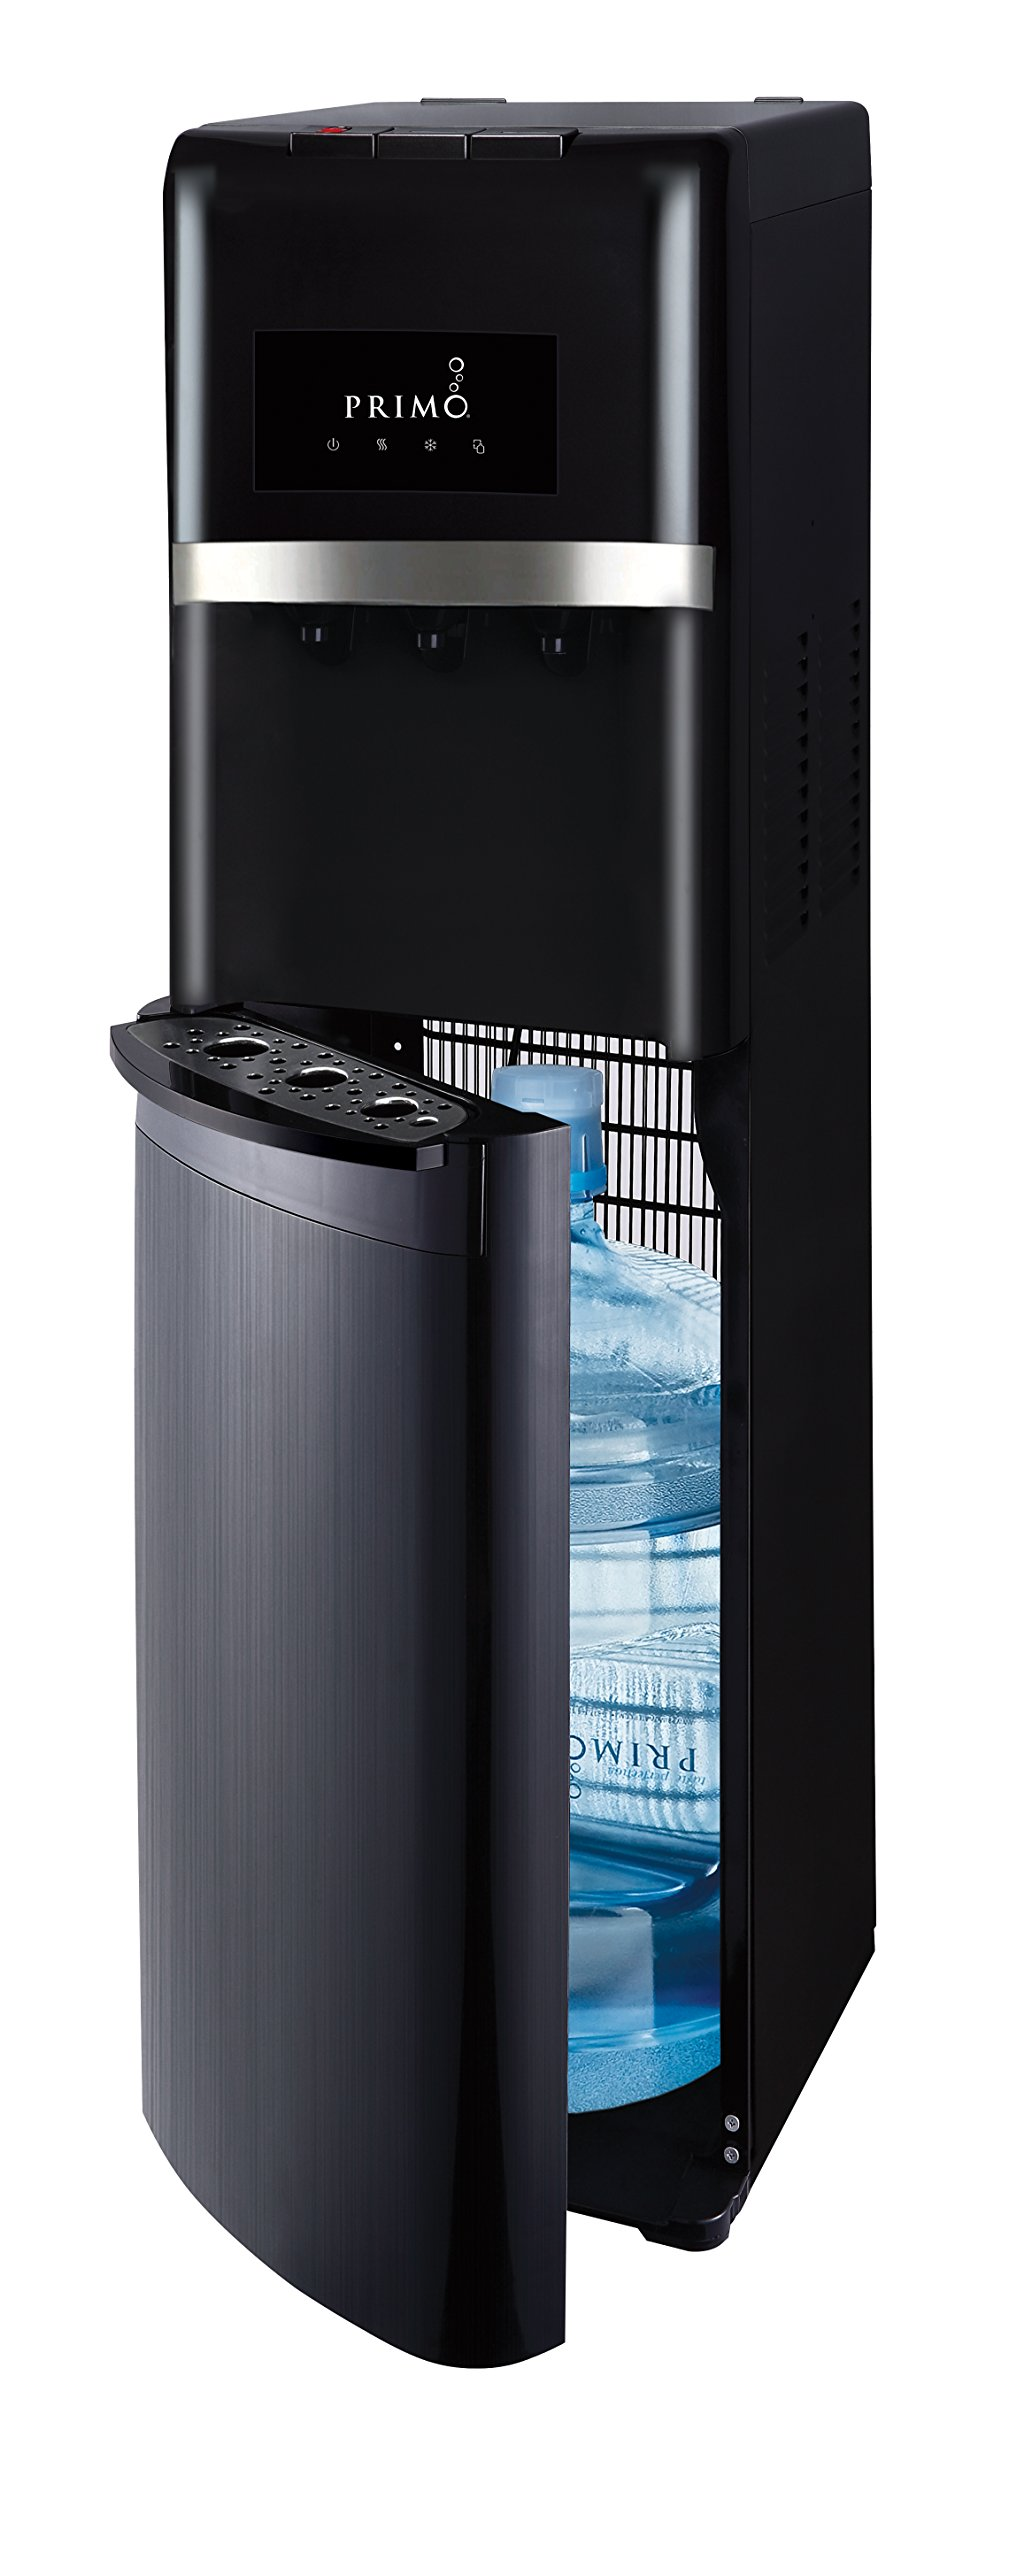 Primo Deluxe Bottom Loading Hot/Cool/Cold Water Dispenser, Black Stainless by Primo Water